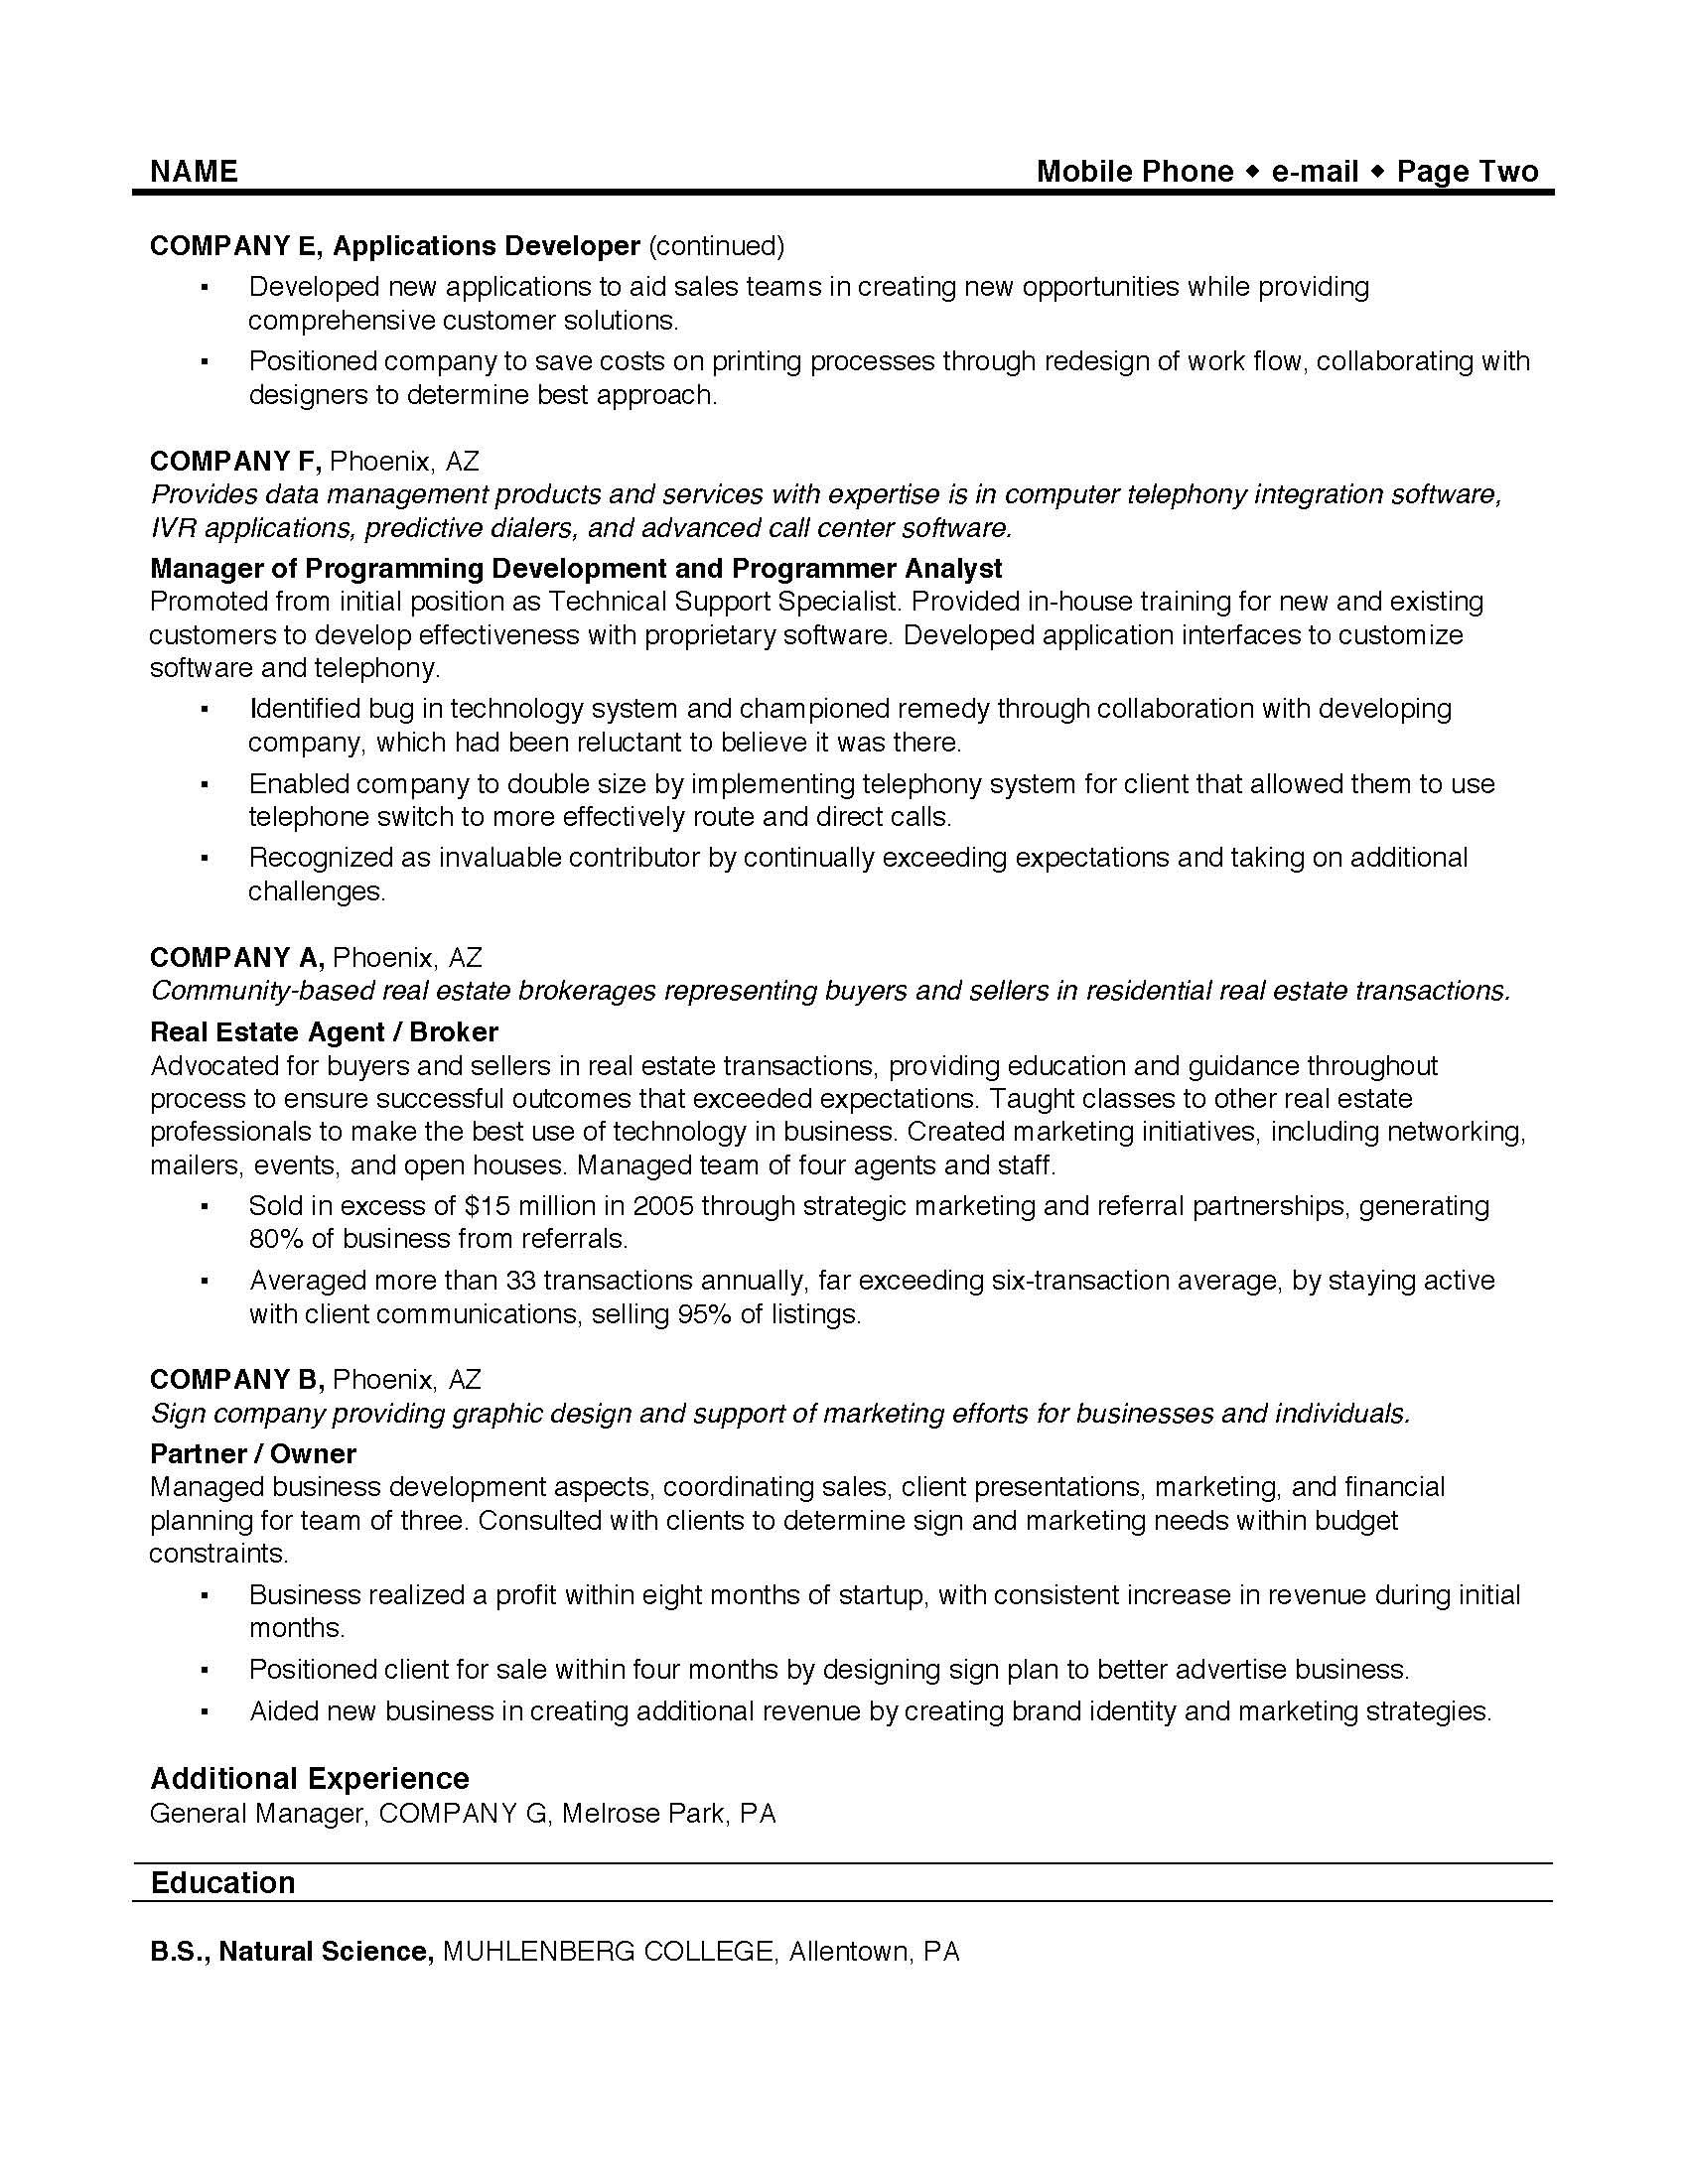 Resume College Student Pics Photos Sample College Student Resume Examples Samples Resumes